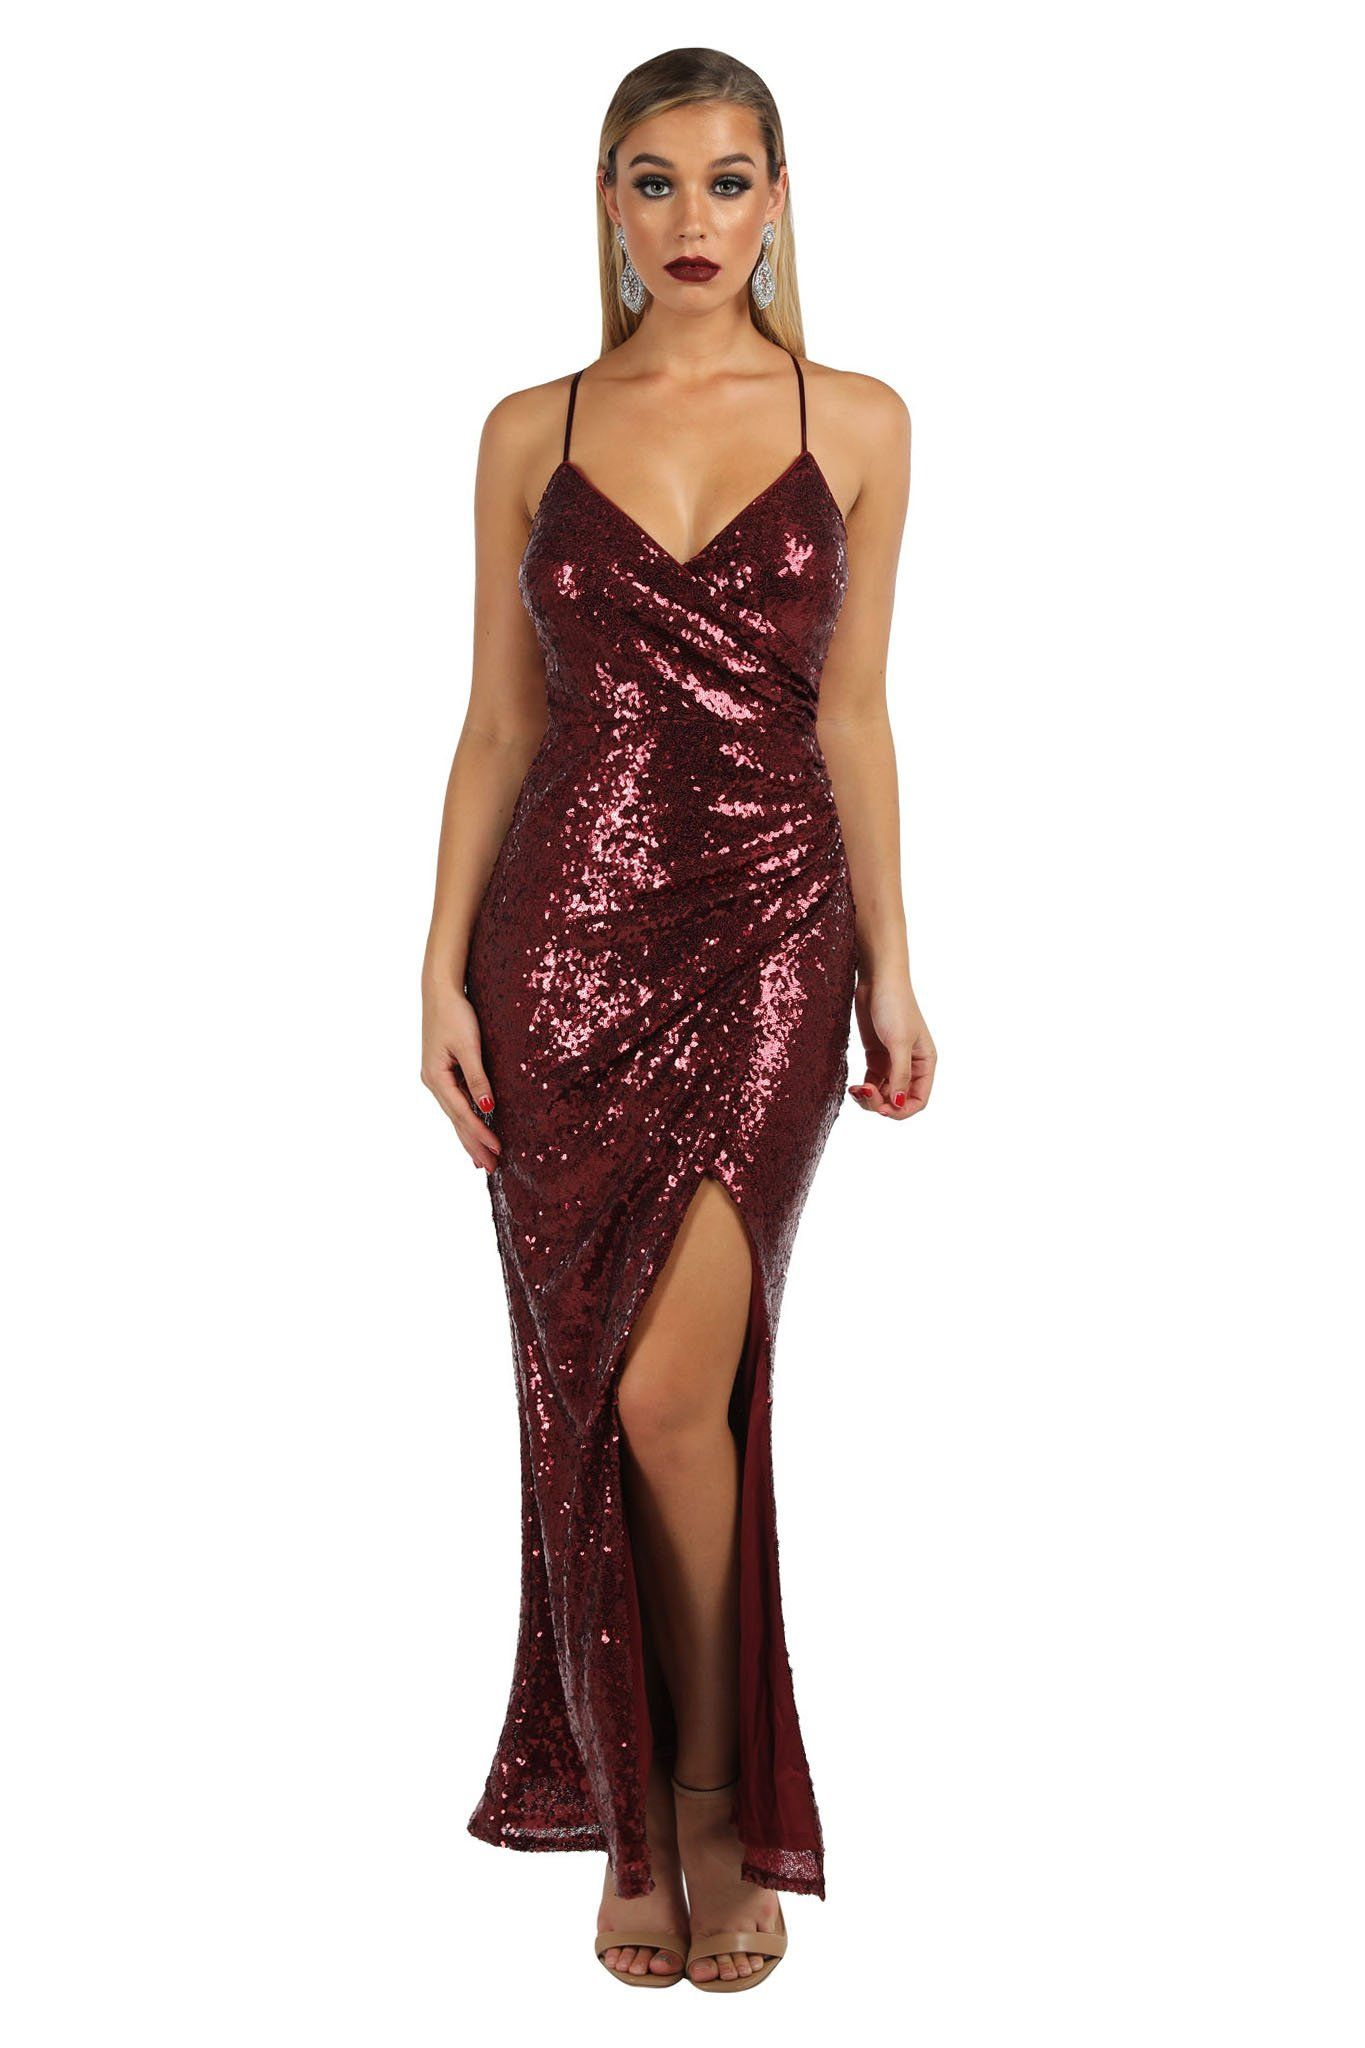 Matte deep red burgundy colored sleeveless sequinned maxi dress with faux wrap design, v neckline, front split and adjustable crisscross back thin straps